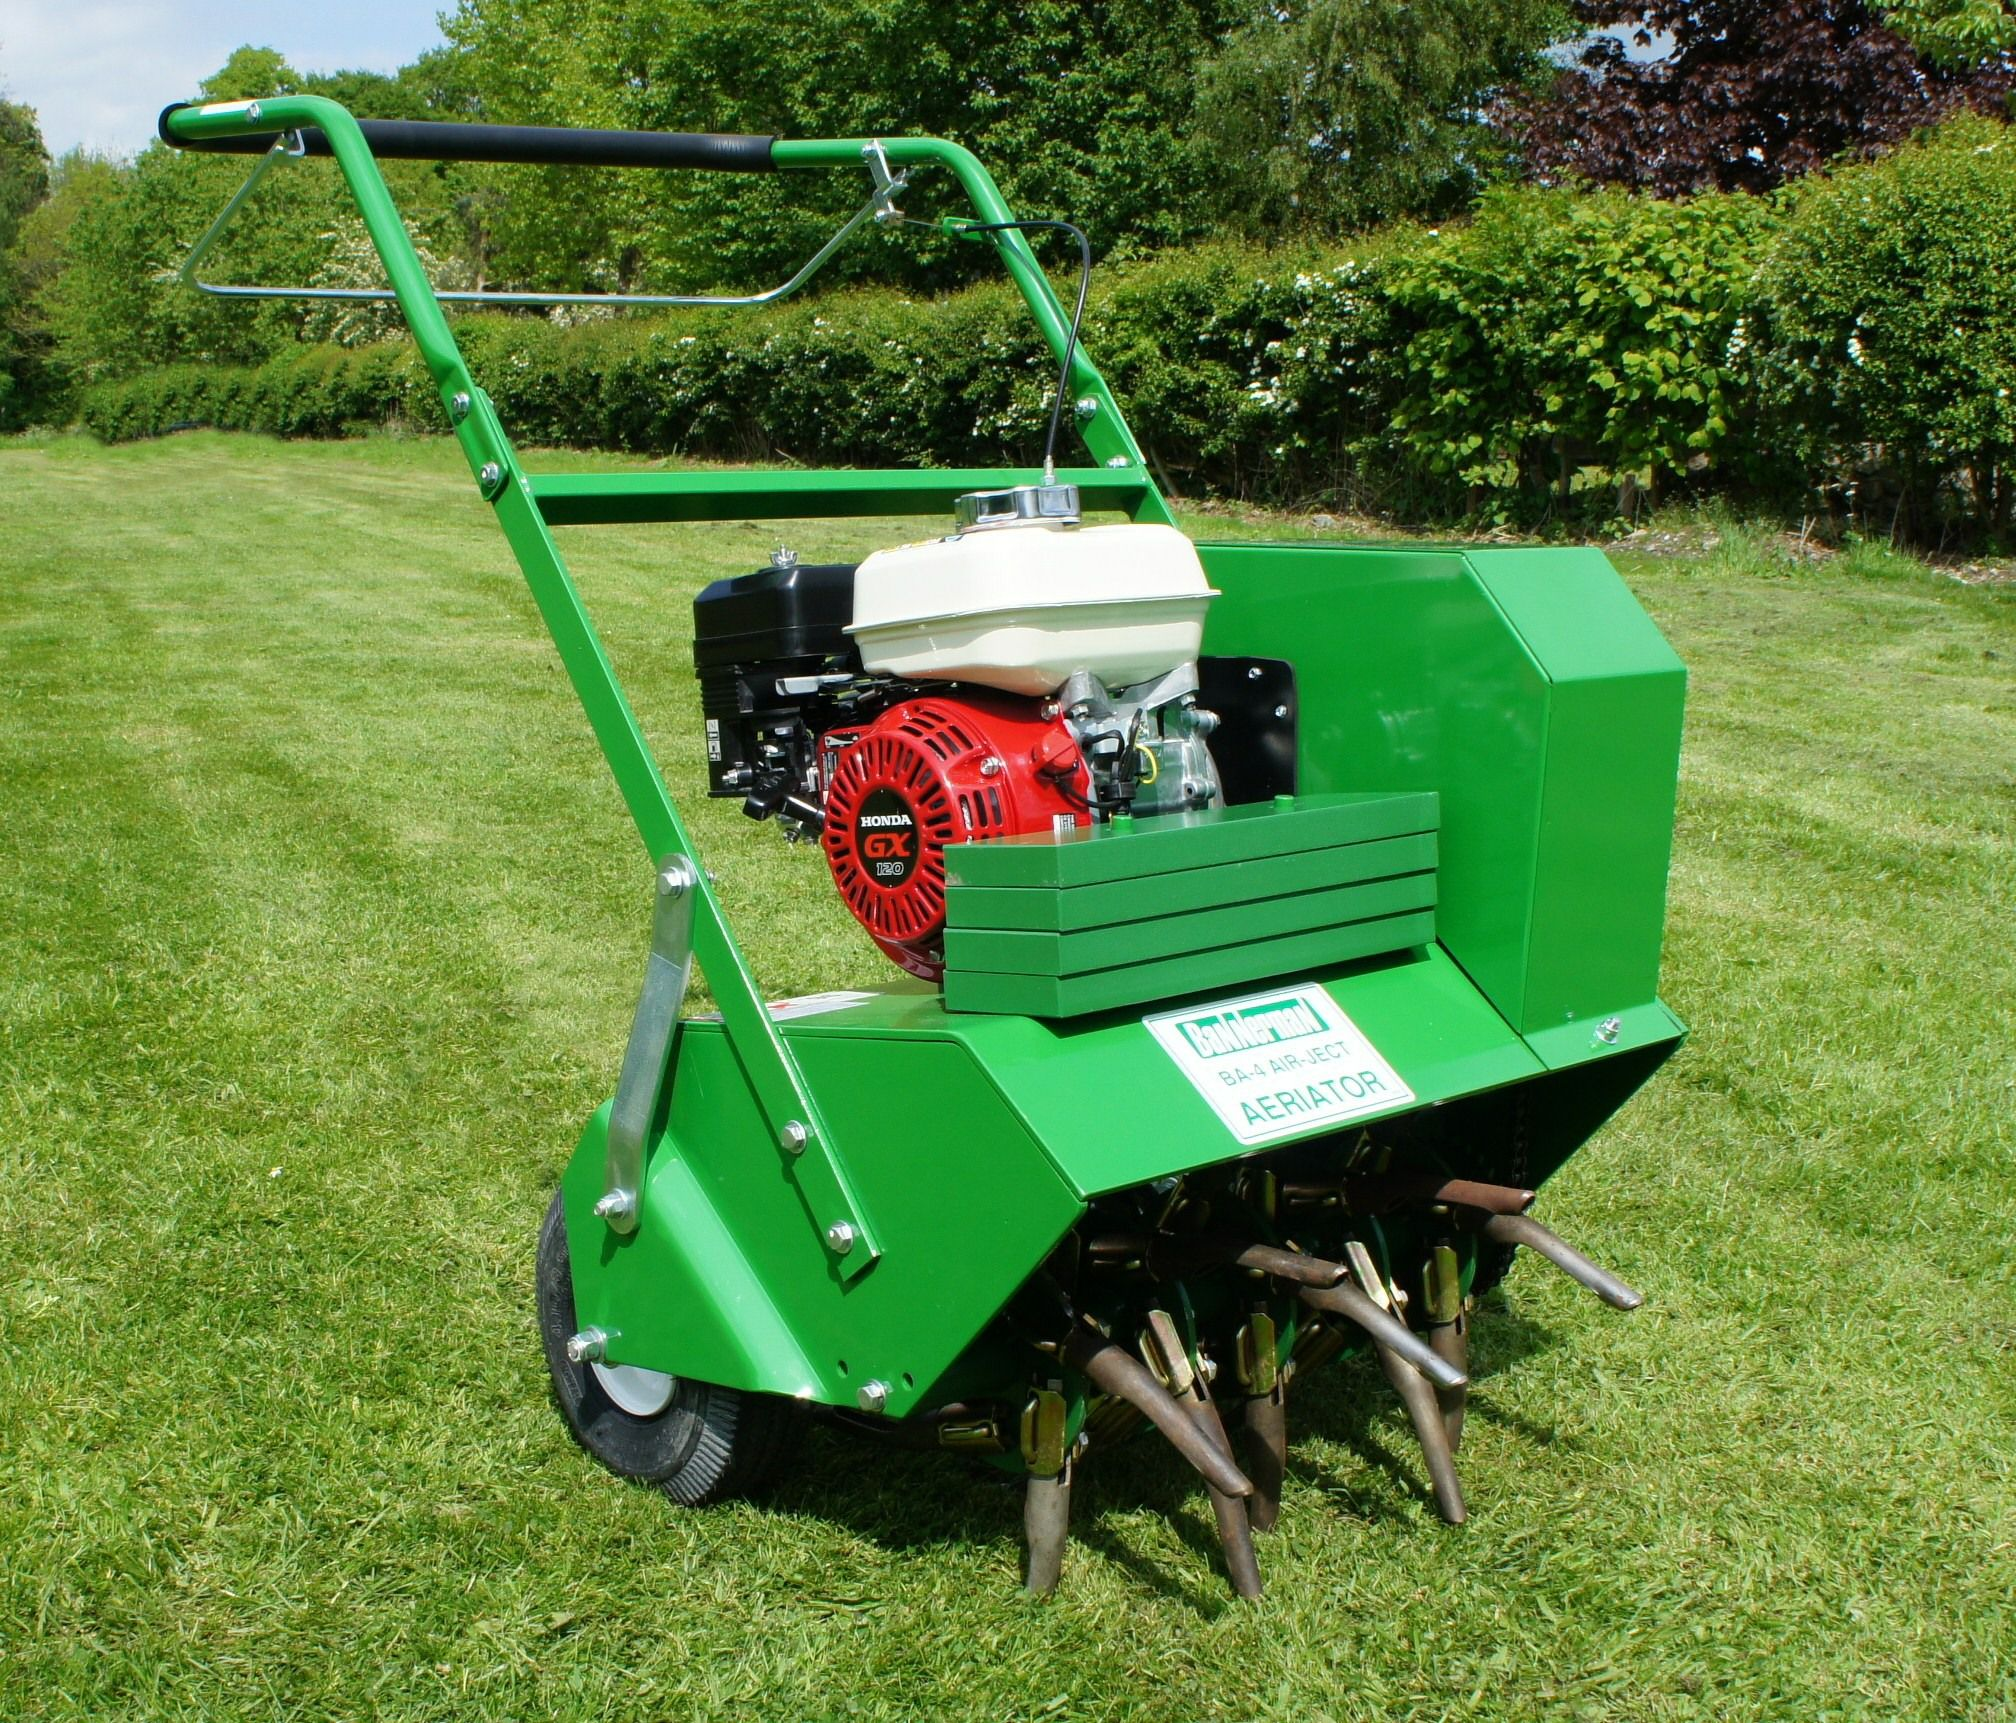 Tool And Equipment Rental Services In Usa Lawn Amp Garden